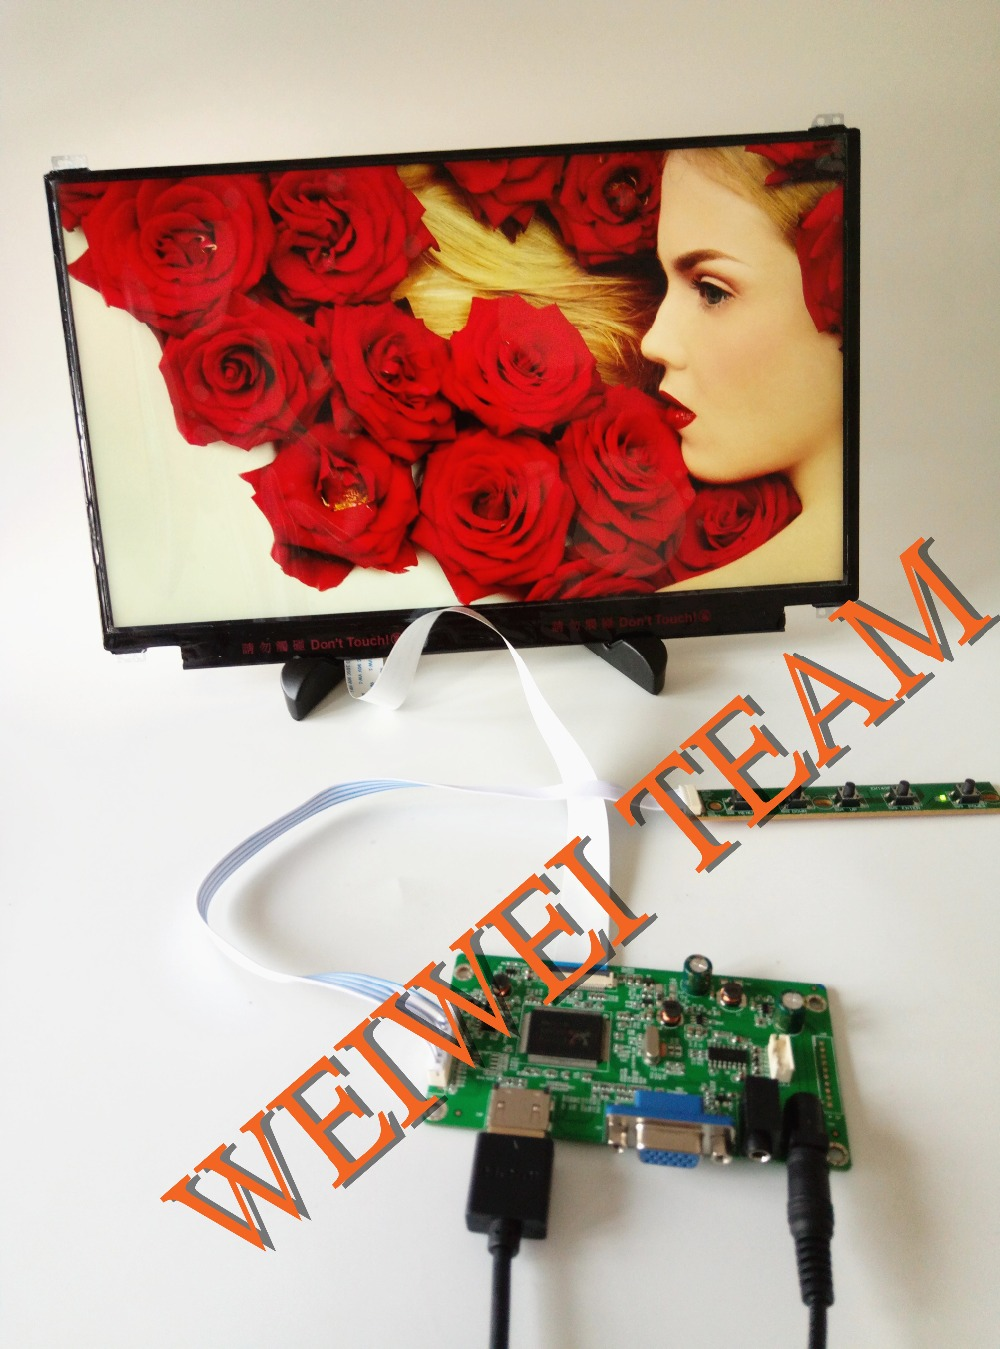 13.3 inch 1920x1080 IPS Screen Display HDMI Driver Board LCD Panel Module Monitor Laptop PC Raspberry Pi 3 Car diy project PS4  13.3 inch 1920x1080 IPS Screen Display HDMI Driver Board LCD Panel Module Monitor Laptop PC Raspberry Pi 3 Car diy project PS4